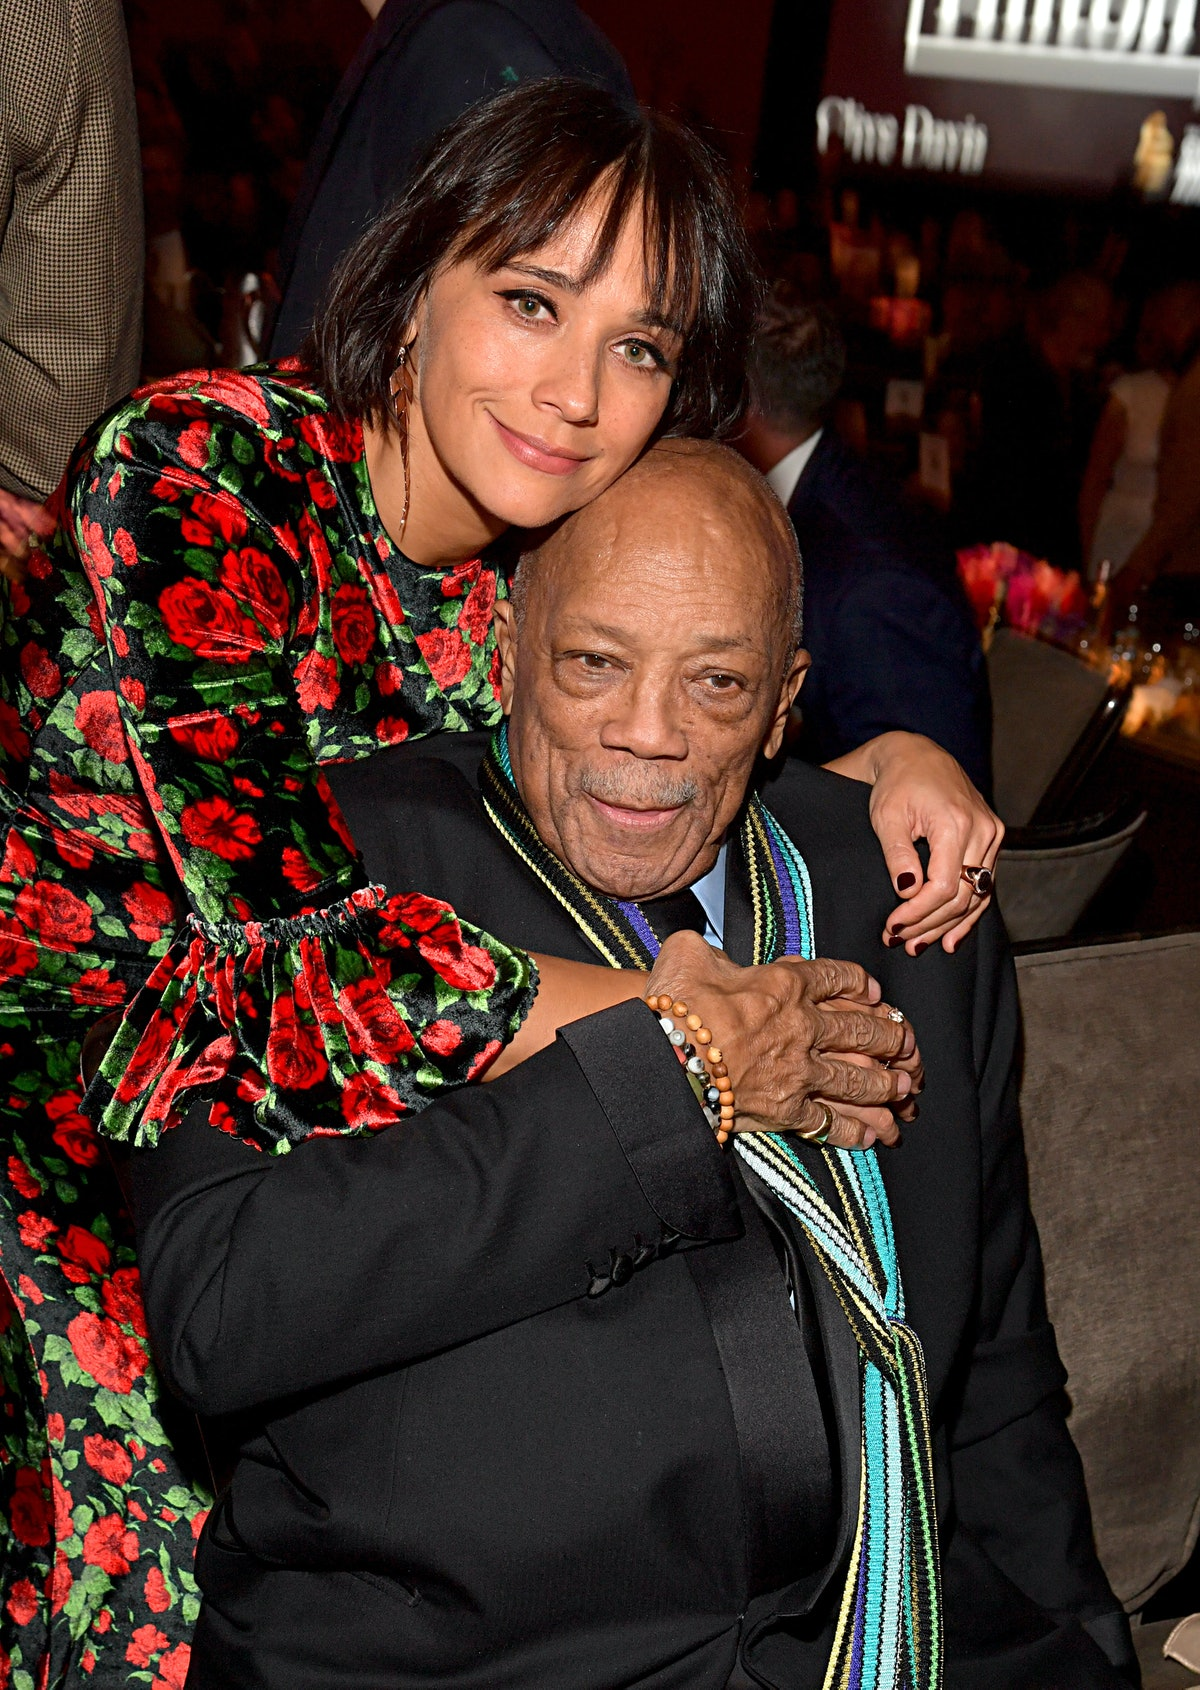 """BEVERLY HILLS, CALIFORNIA - JANUARY 25: Rashida Jones and Quincy Jones attend the Pre-GRAMMY Gala and GRAMMY Salute to Industry Icons Honoring Sean """"Diddy"""" Combs on January 25, 2020 in Beverly Hills, California. (Photo by Lester Cohen/Getty Images for The Recording Academy)"""